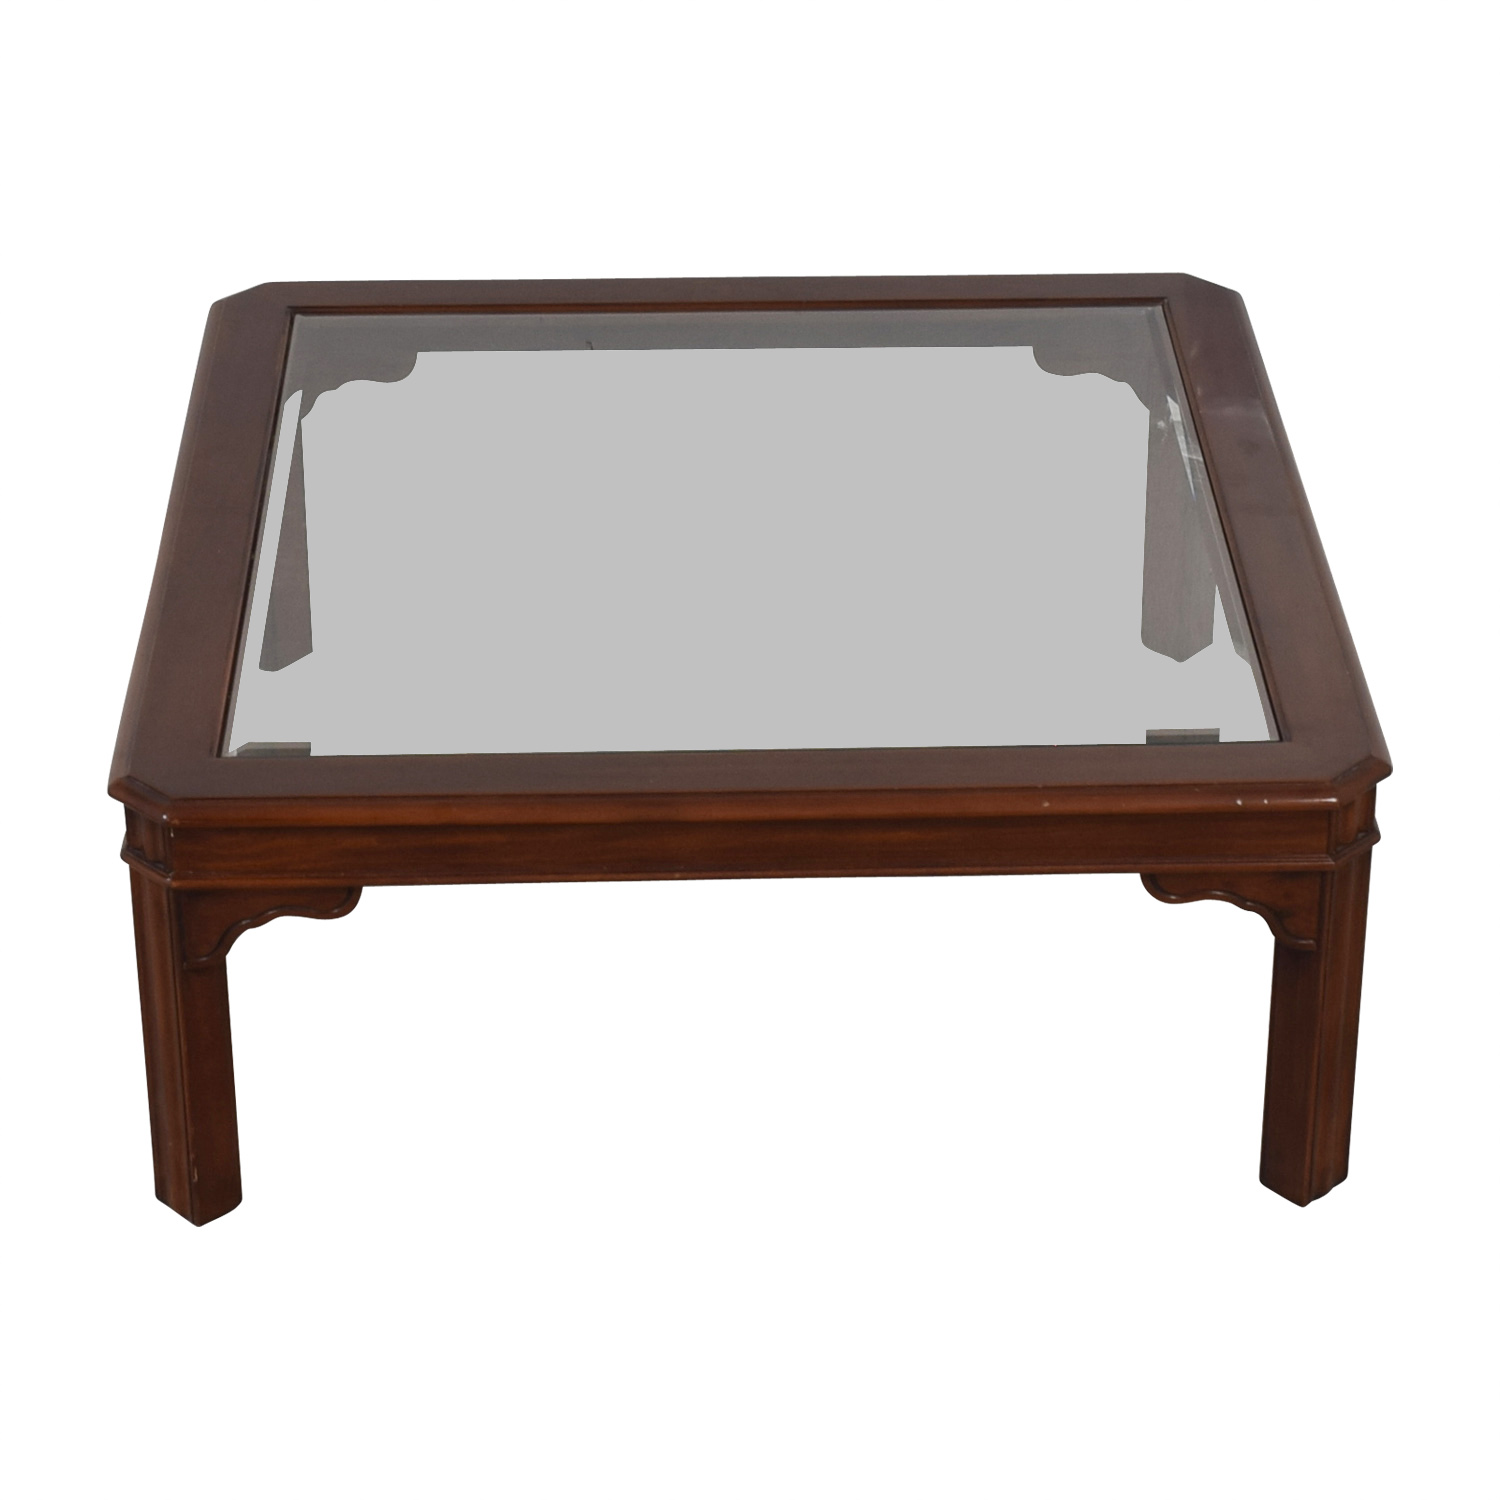 shop  Glass Top and Wood Coffee Table online